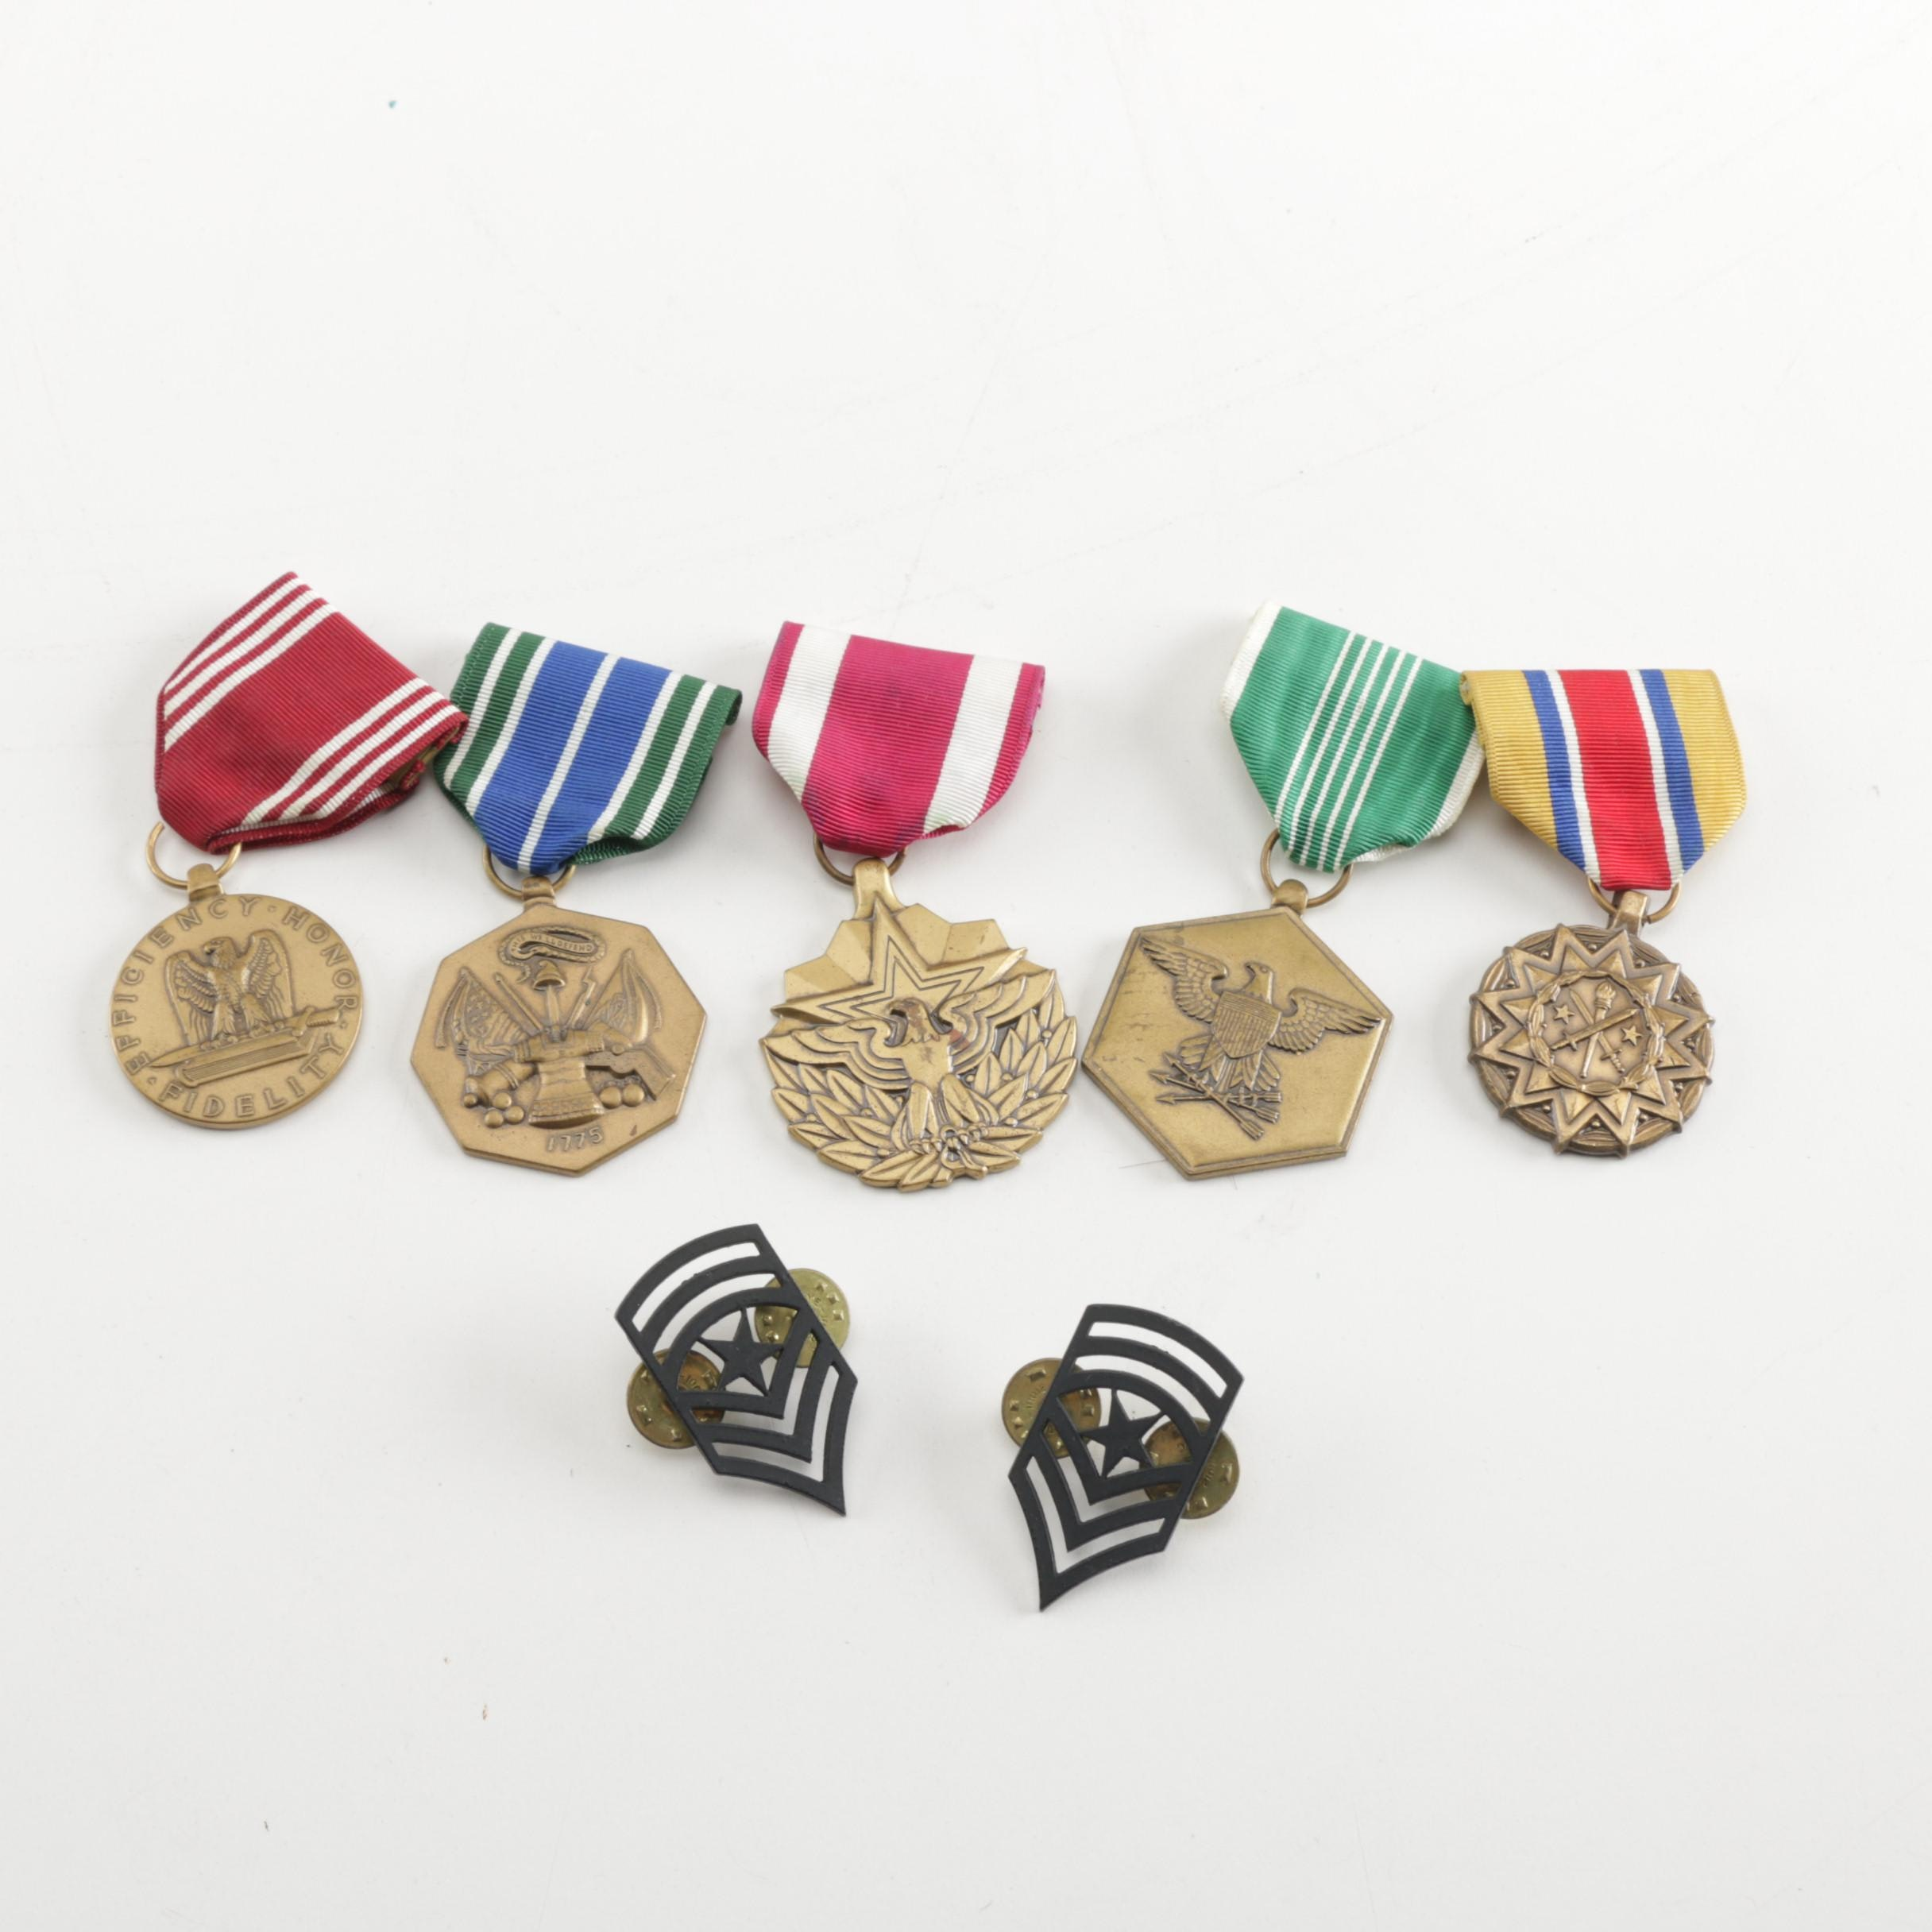 Assortment of US Army Medals